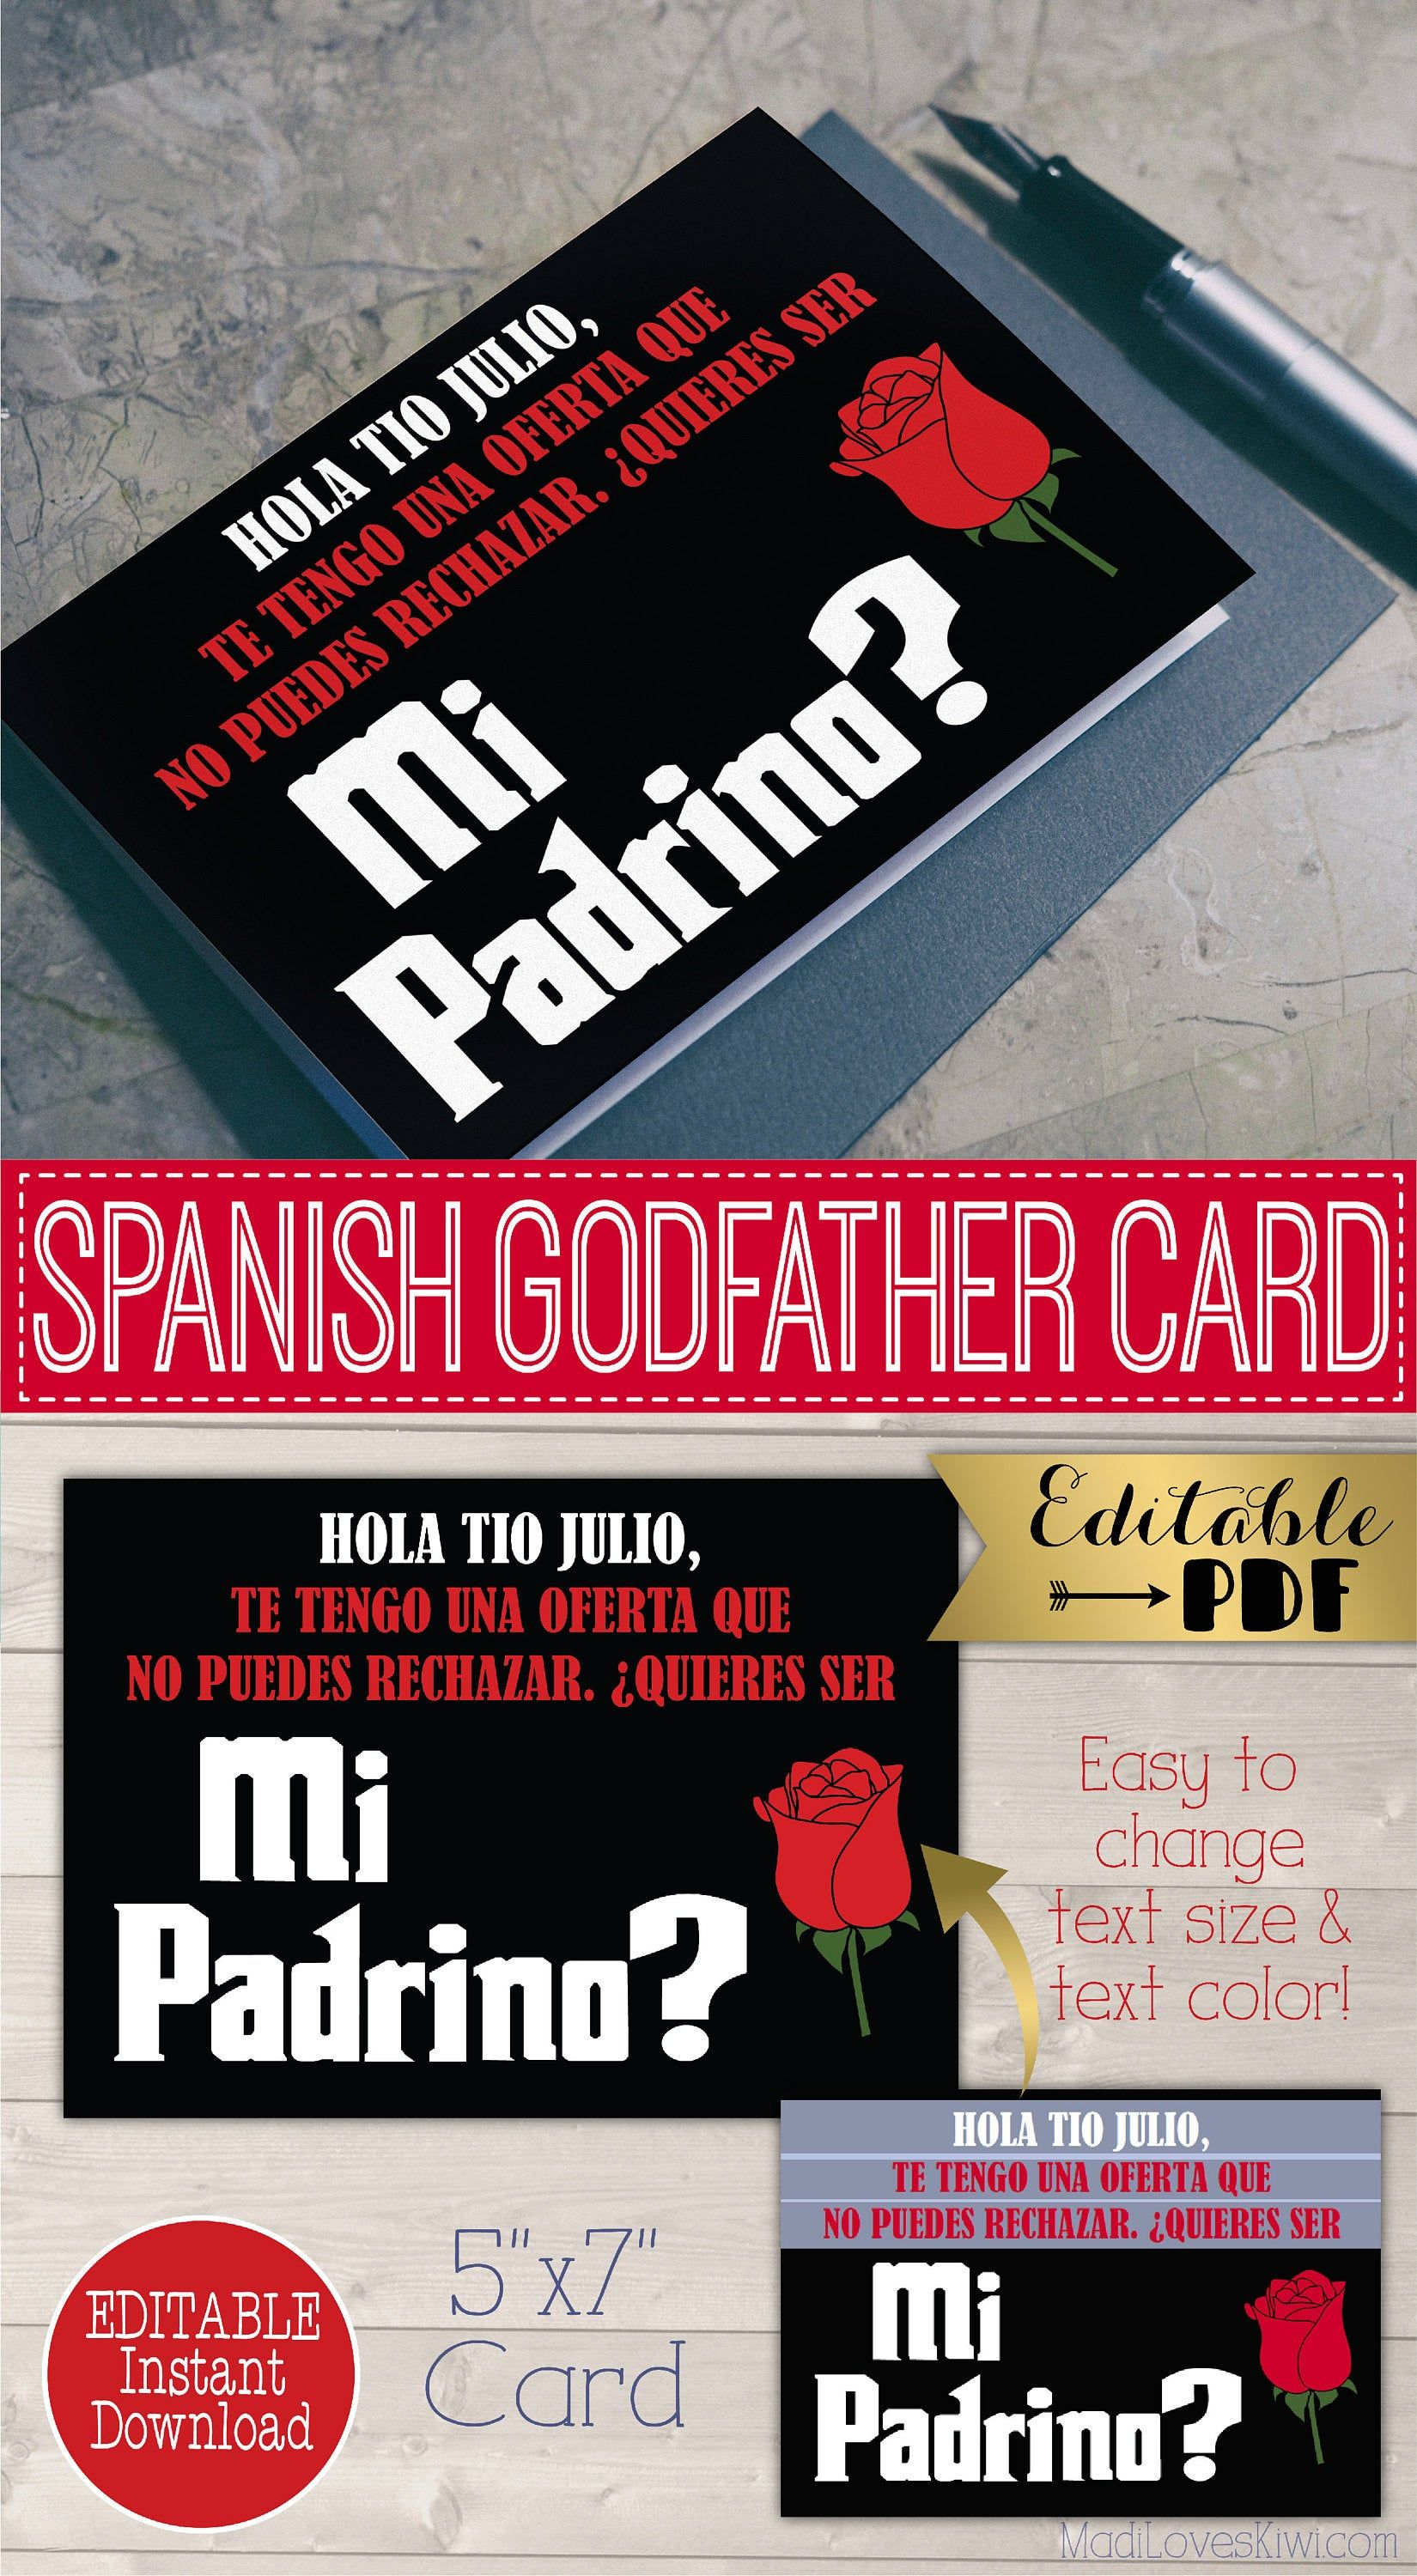 Spanish Godfather Card Quieres Ser Mi Padrino Tarjeta Ask Etsy In 2020 The Godfather Godfather Gifts Digital Gifts